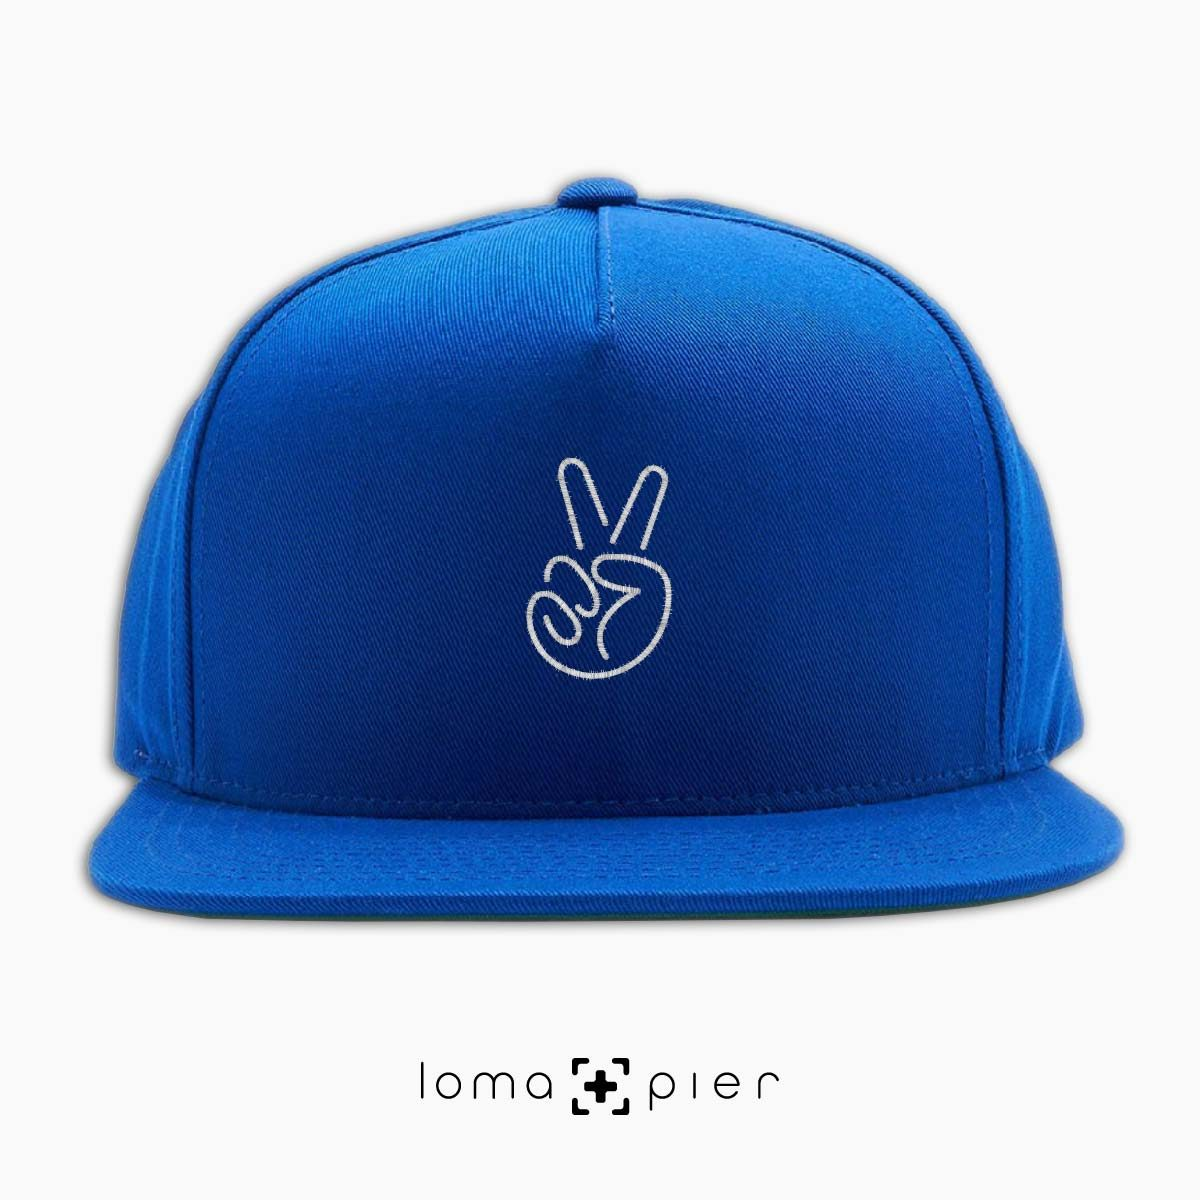 PEACE HAND icon embroidered on a royal blue classic snapback hat with white thread by loma+pier hat store